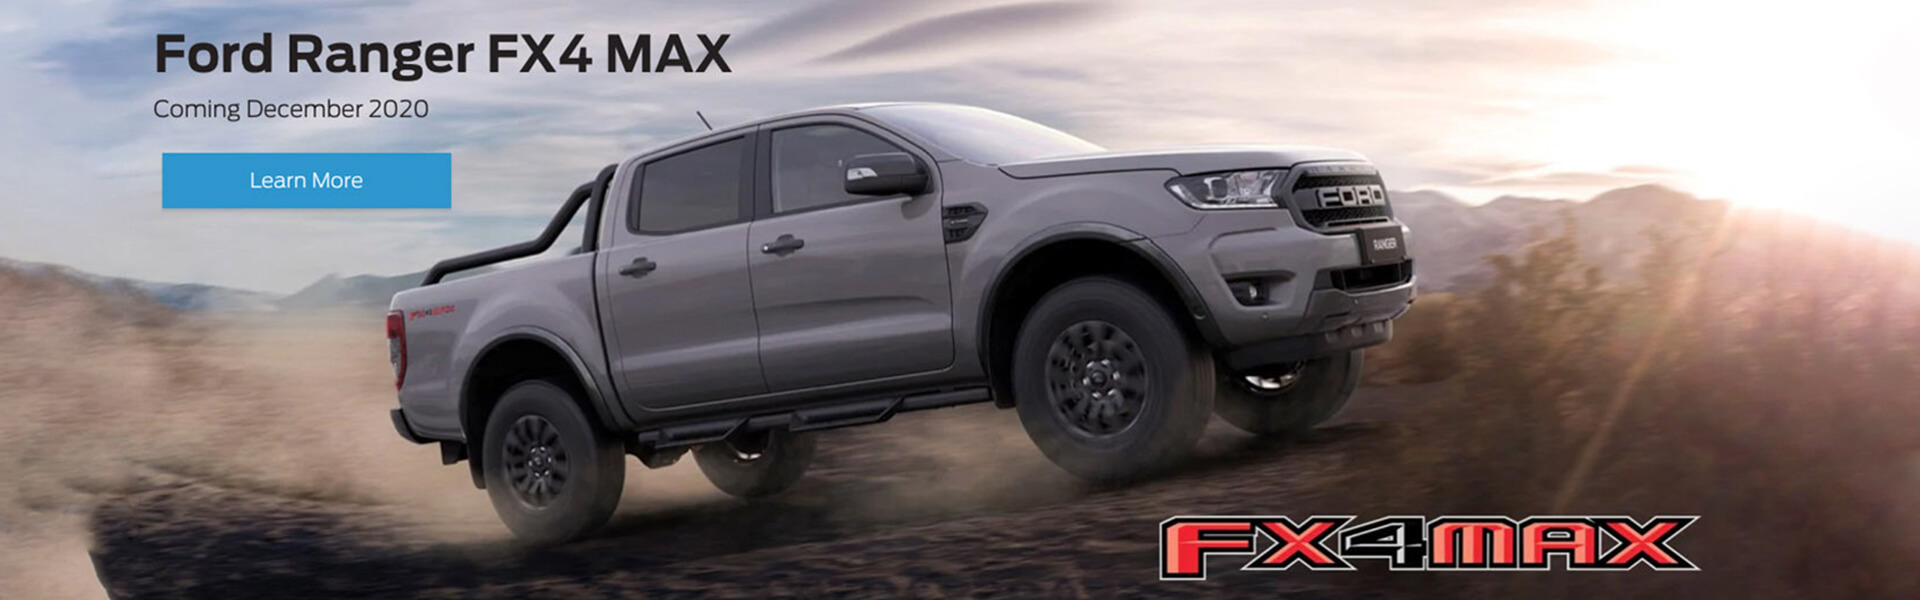 Ford Ranger FX4 MAX - Coming December 2020